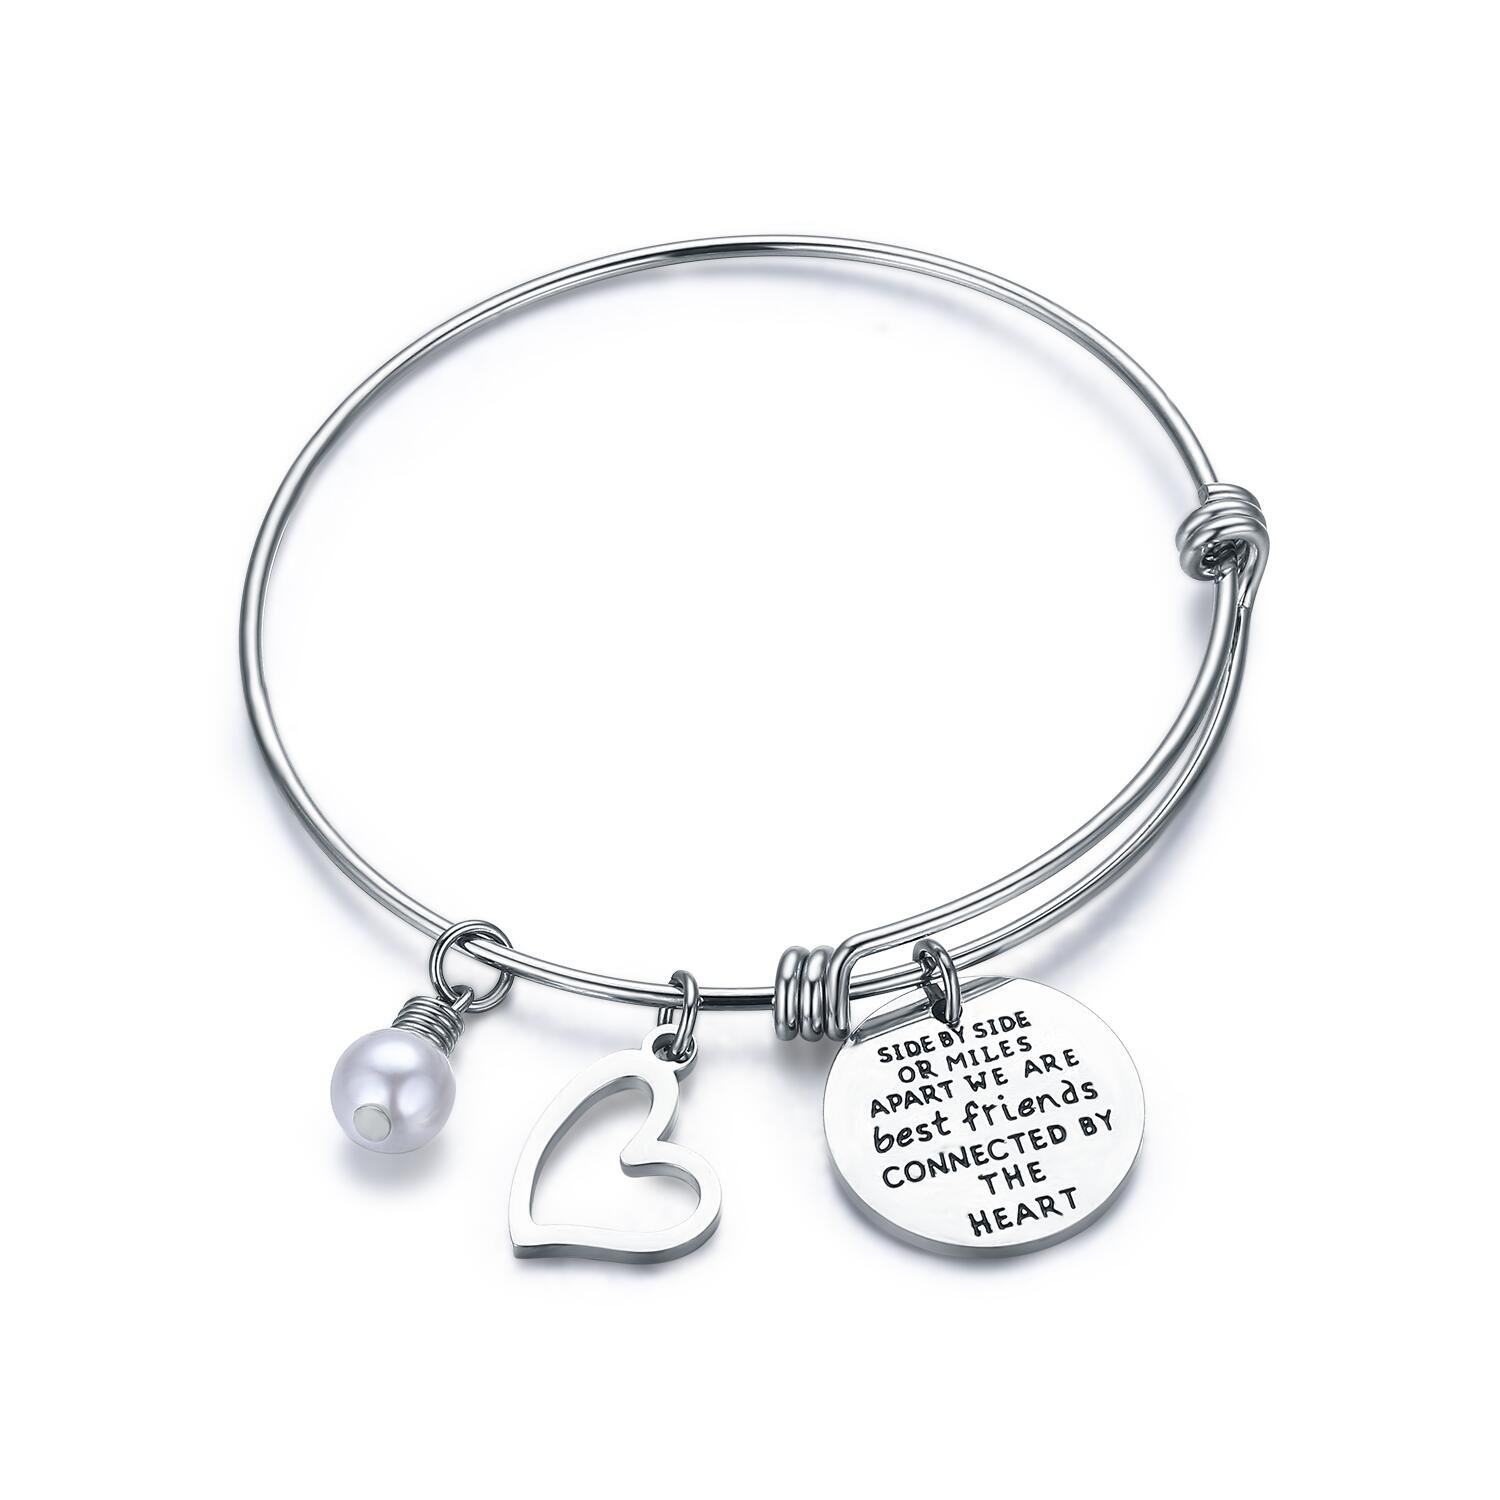 CJ&M Best Friend Bracelets - Side By Side Or Miles Apart Compass Best Friends Bangle Bracelets Adjustable,Long Distance Friendship Gifts,Sister Gift Jewelry B06XS5XG8L_US